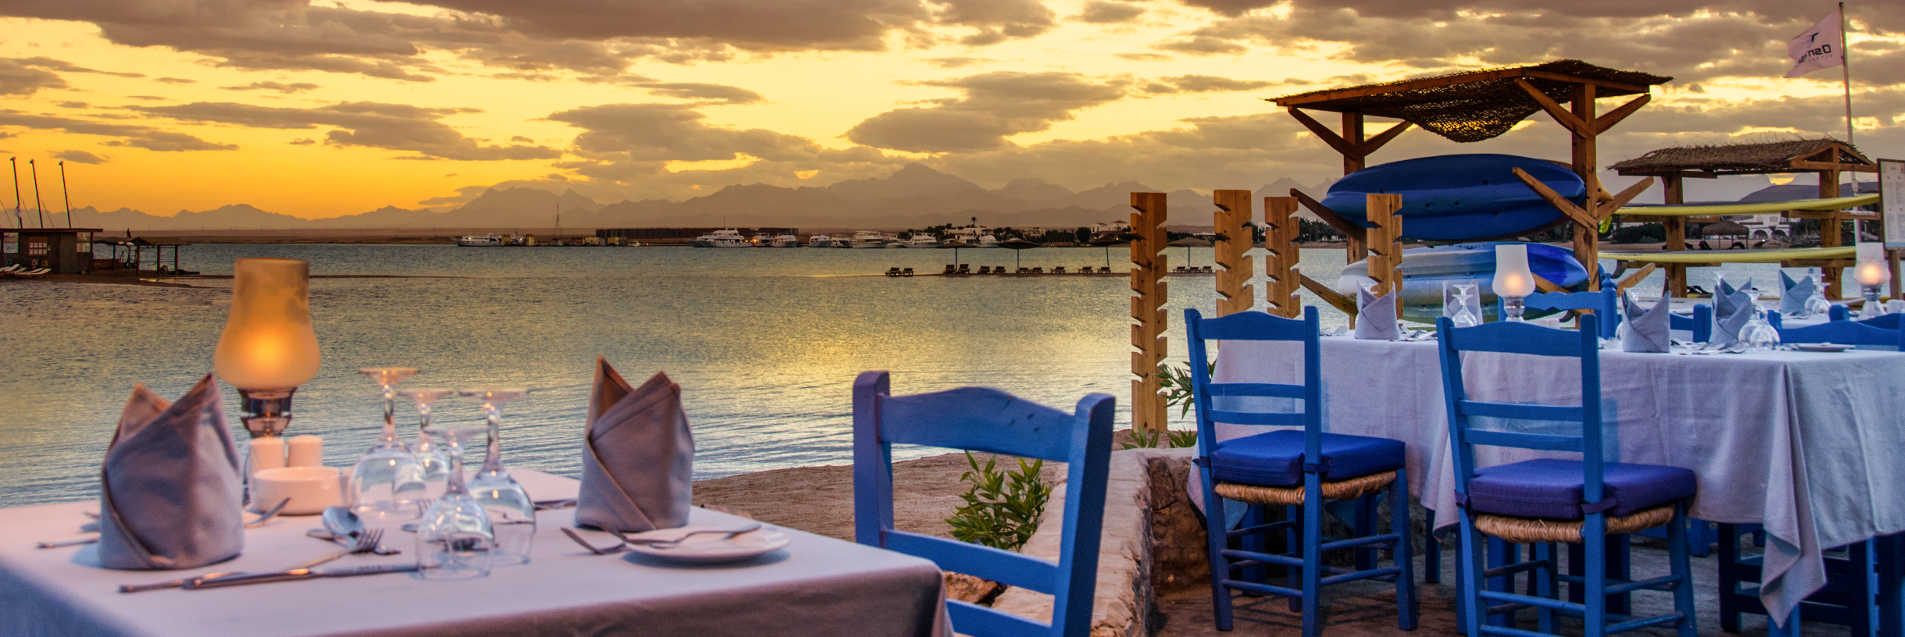 The Best Restaurants in El Gouna ( 2019 List )